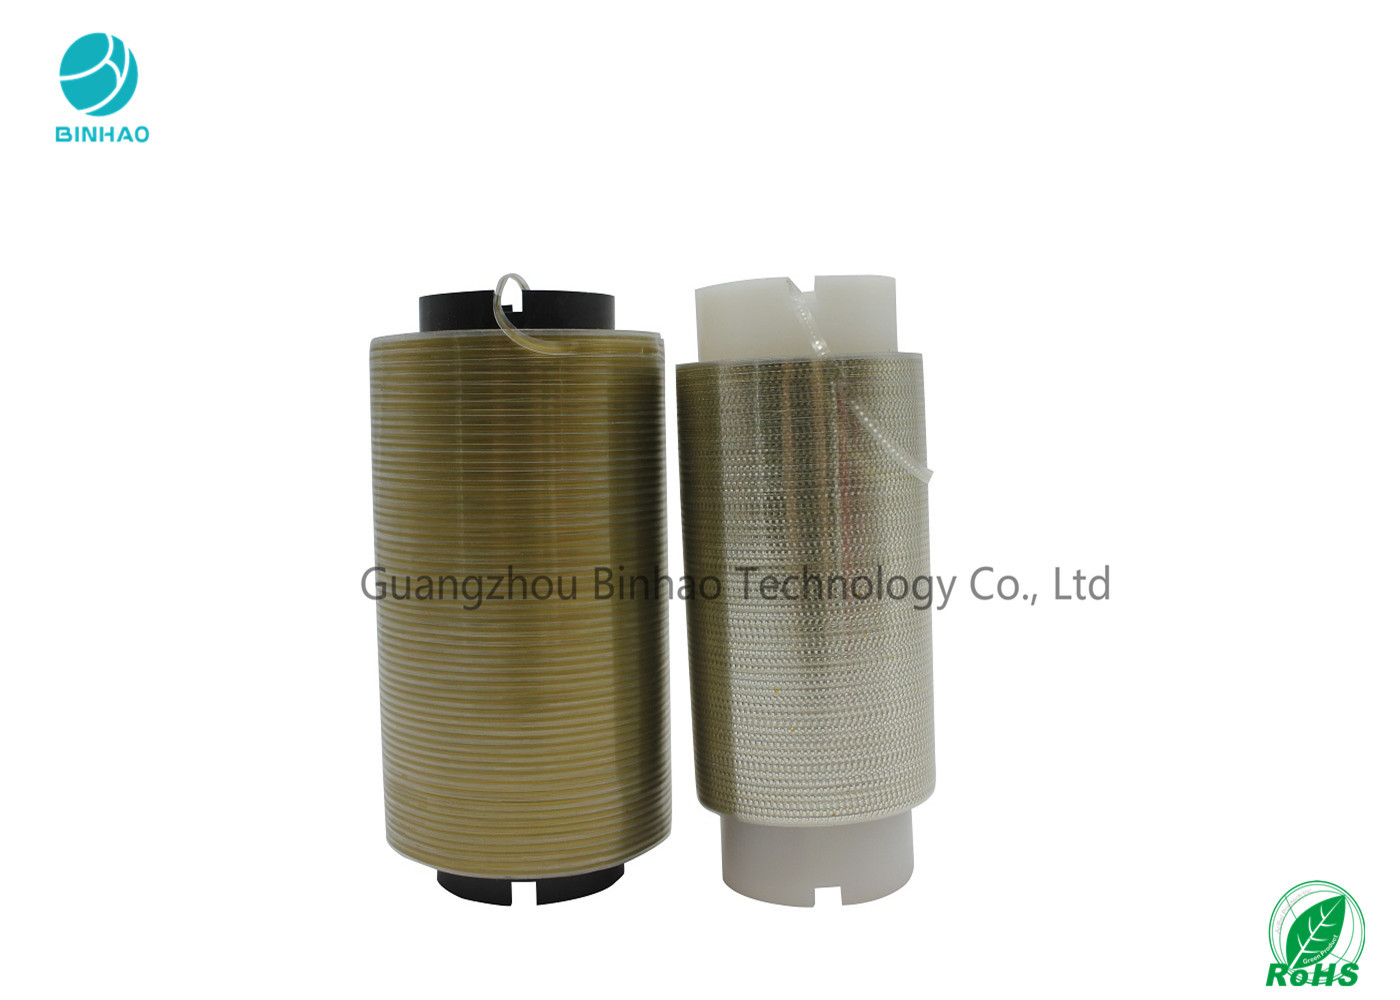 Laser And Micro Printing Holographic Tear Strip Tape Roll For Cigarette And Cosmetics